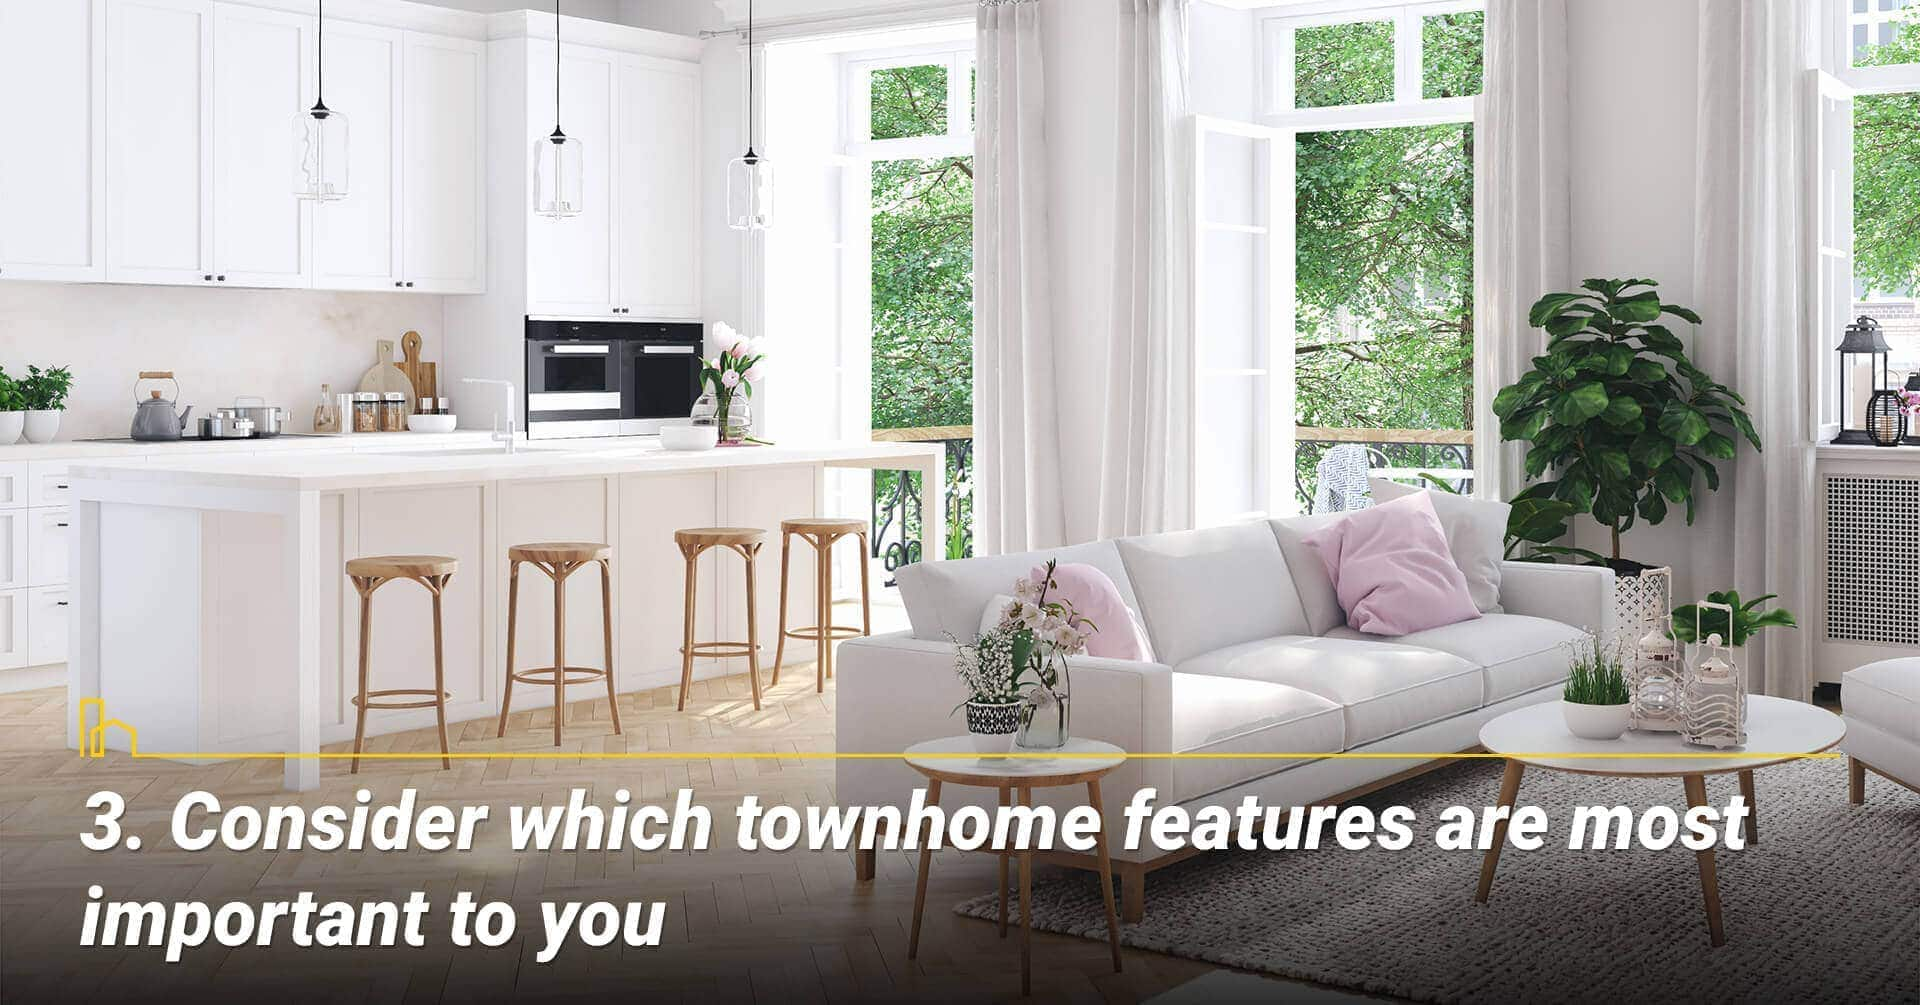 Consider which townhome features are most important to you, know what you want in a townhome